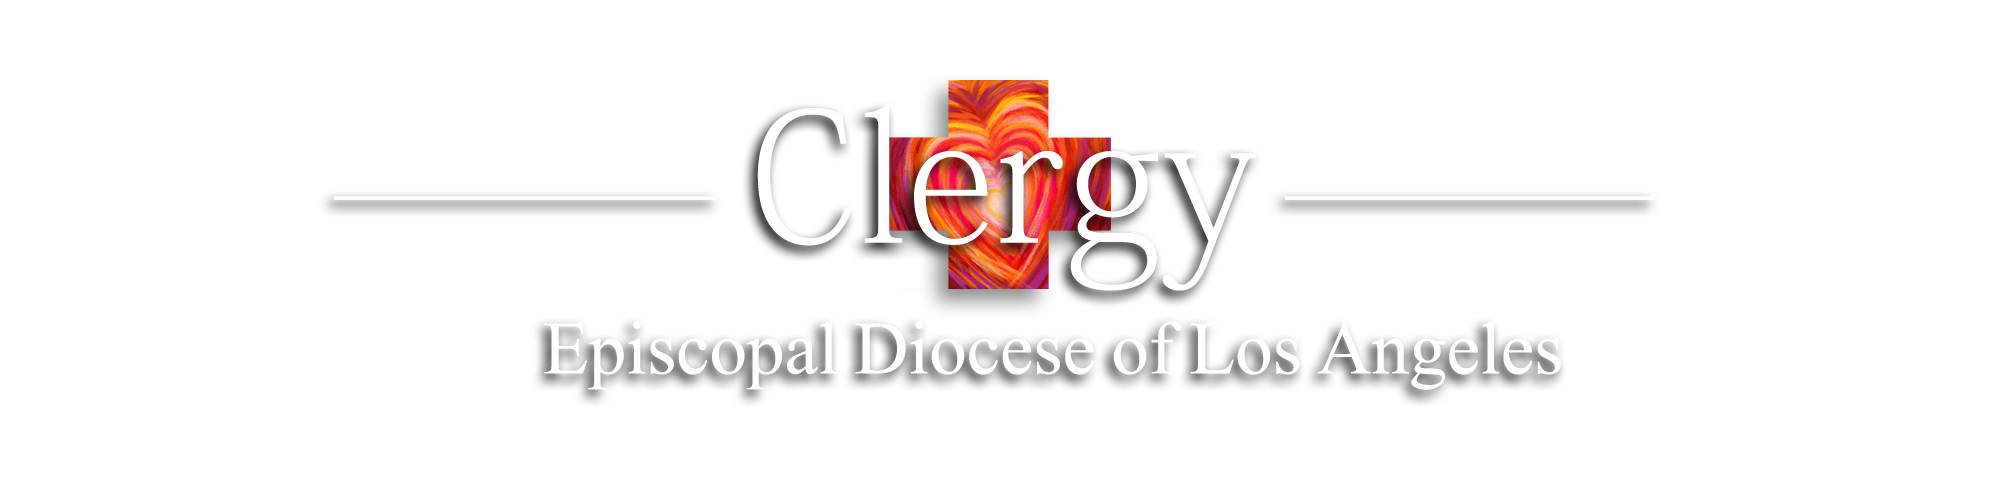 Clergy-txt_1.png